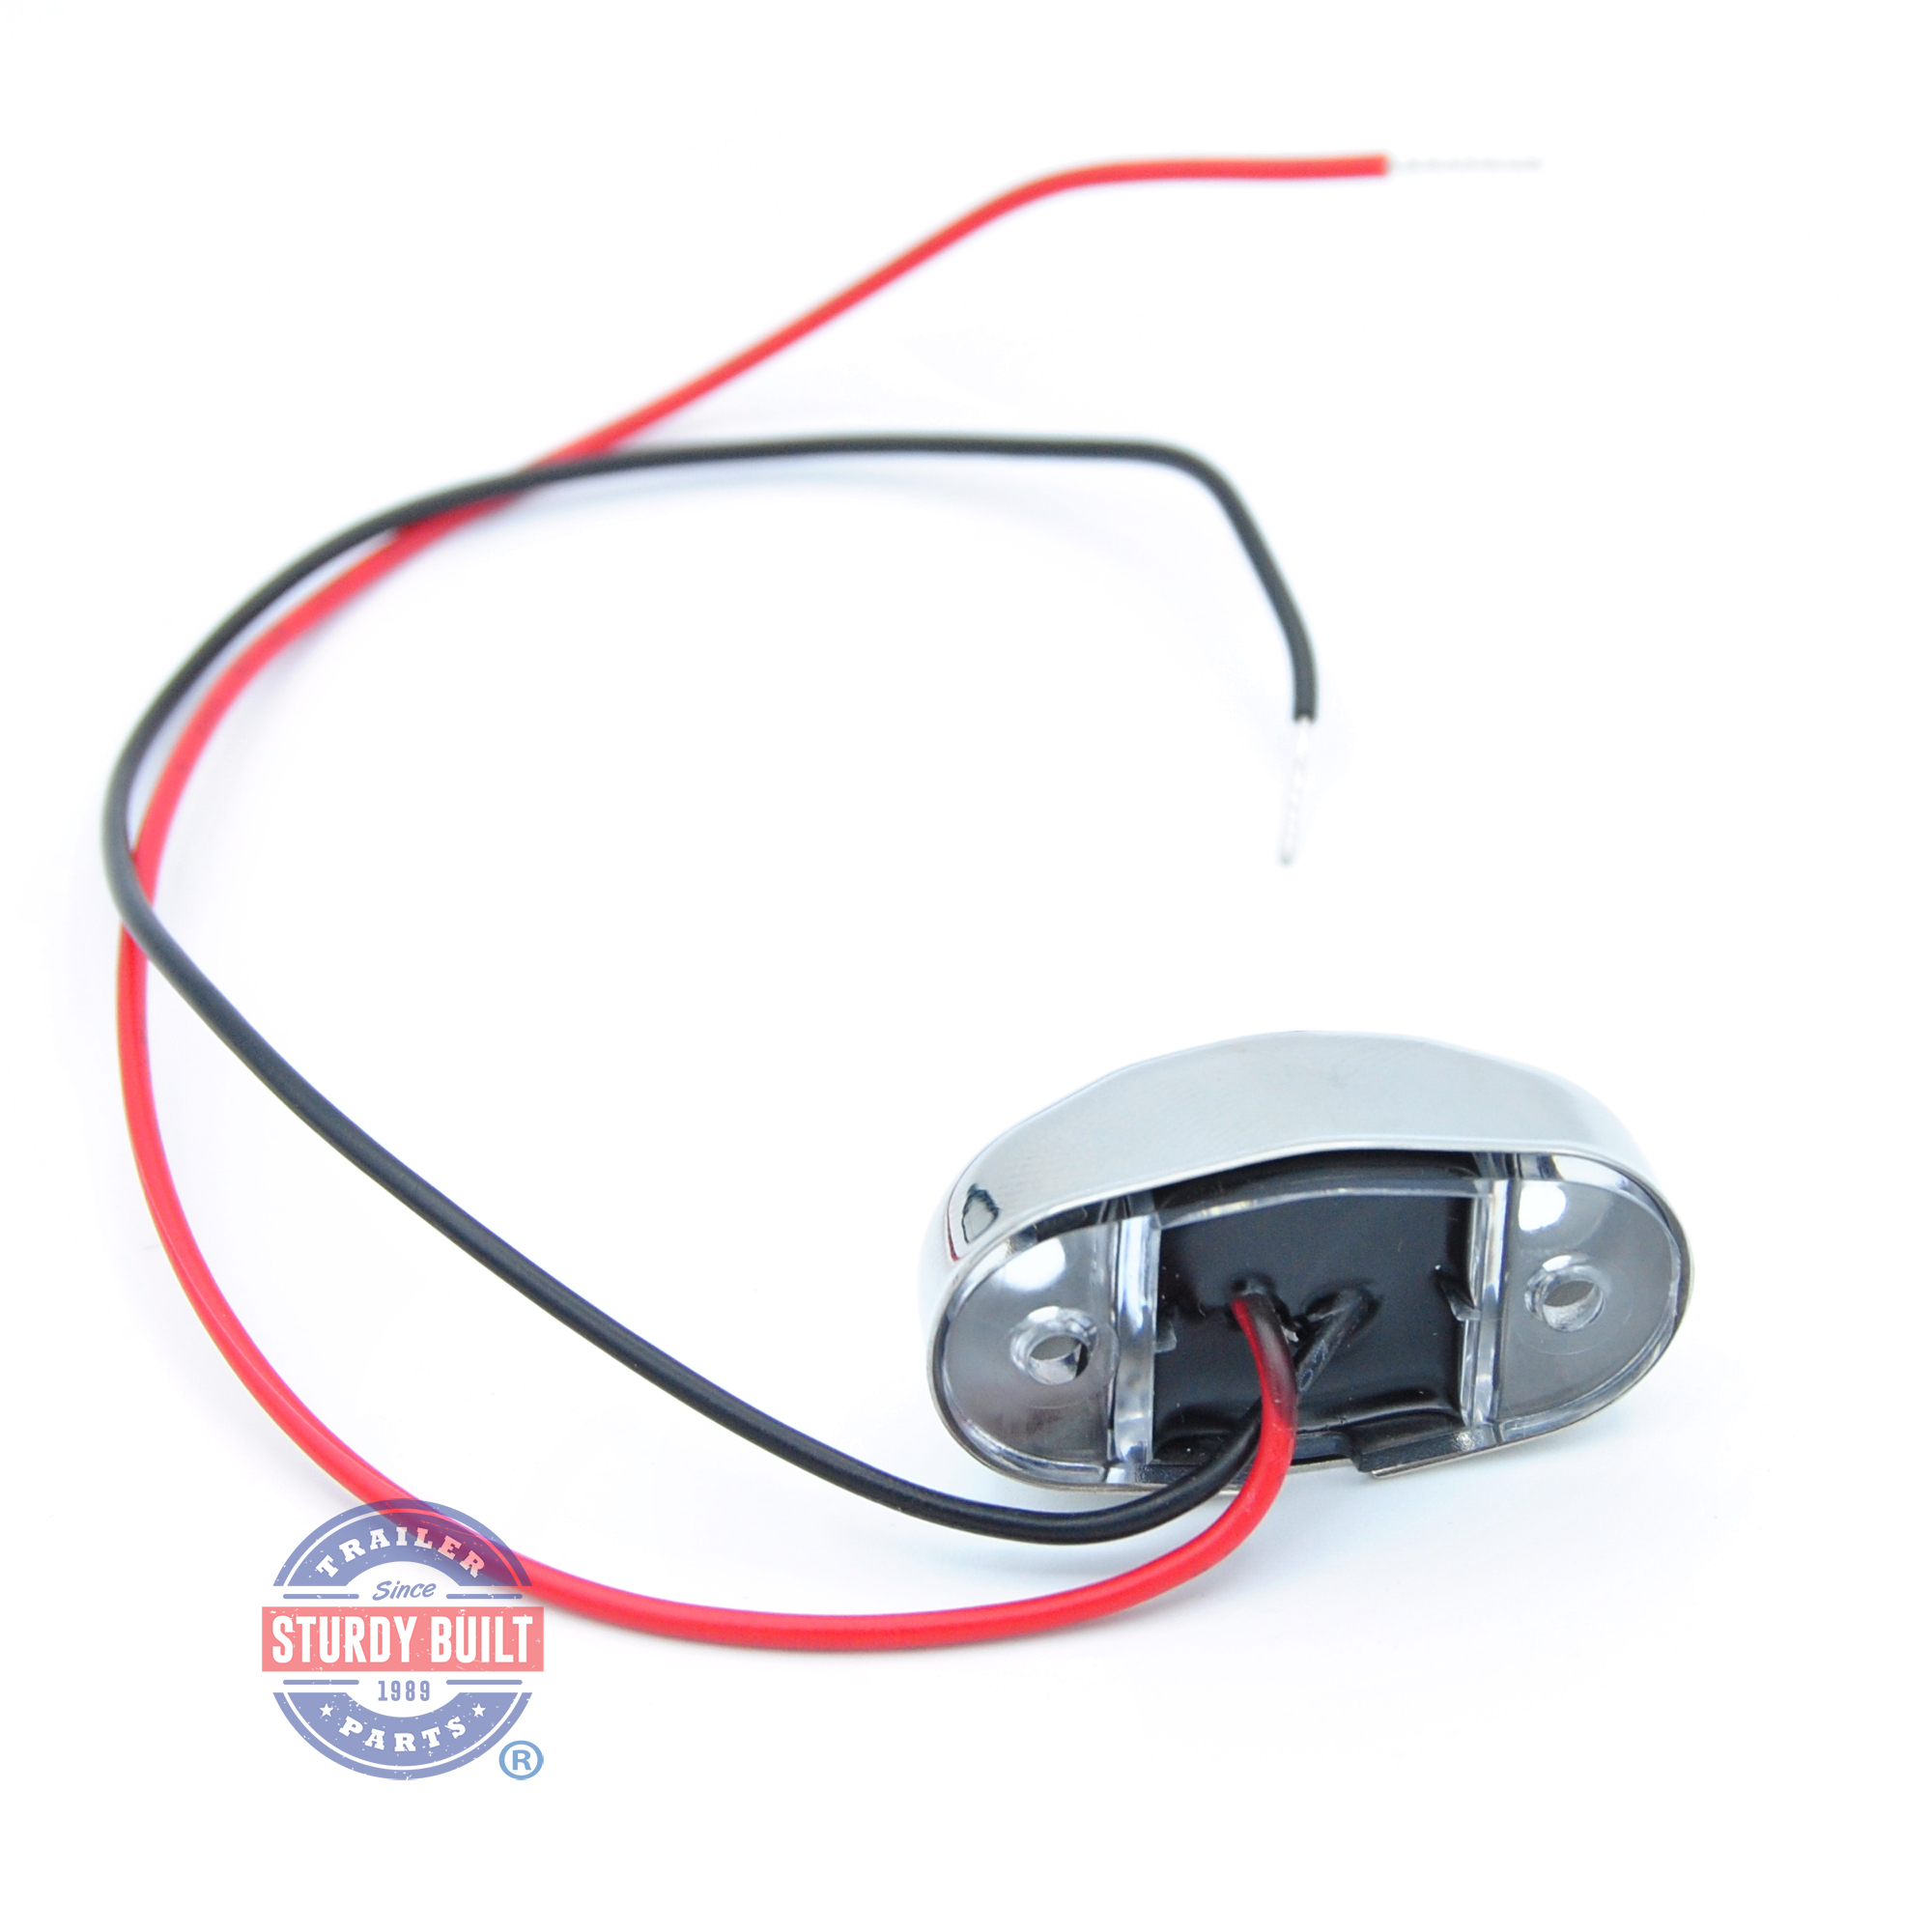 Led Red Boat Light Oval Accent With 4 Leds Stainless Steel Housing Return From Wiring A Trailer To Trailers By D14 R000 1 0s00